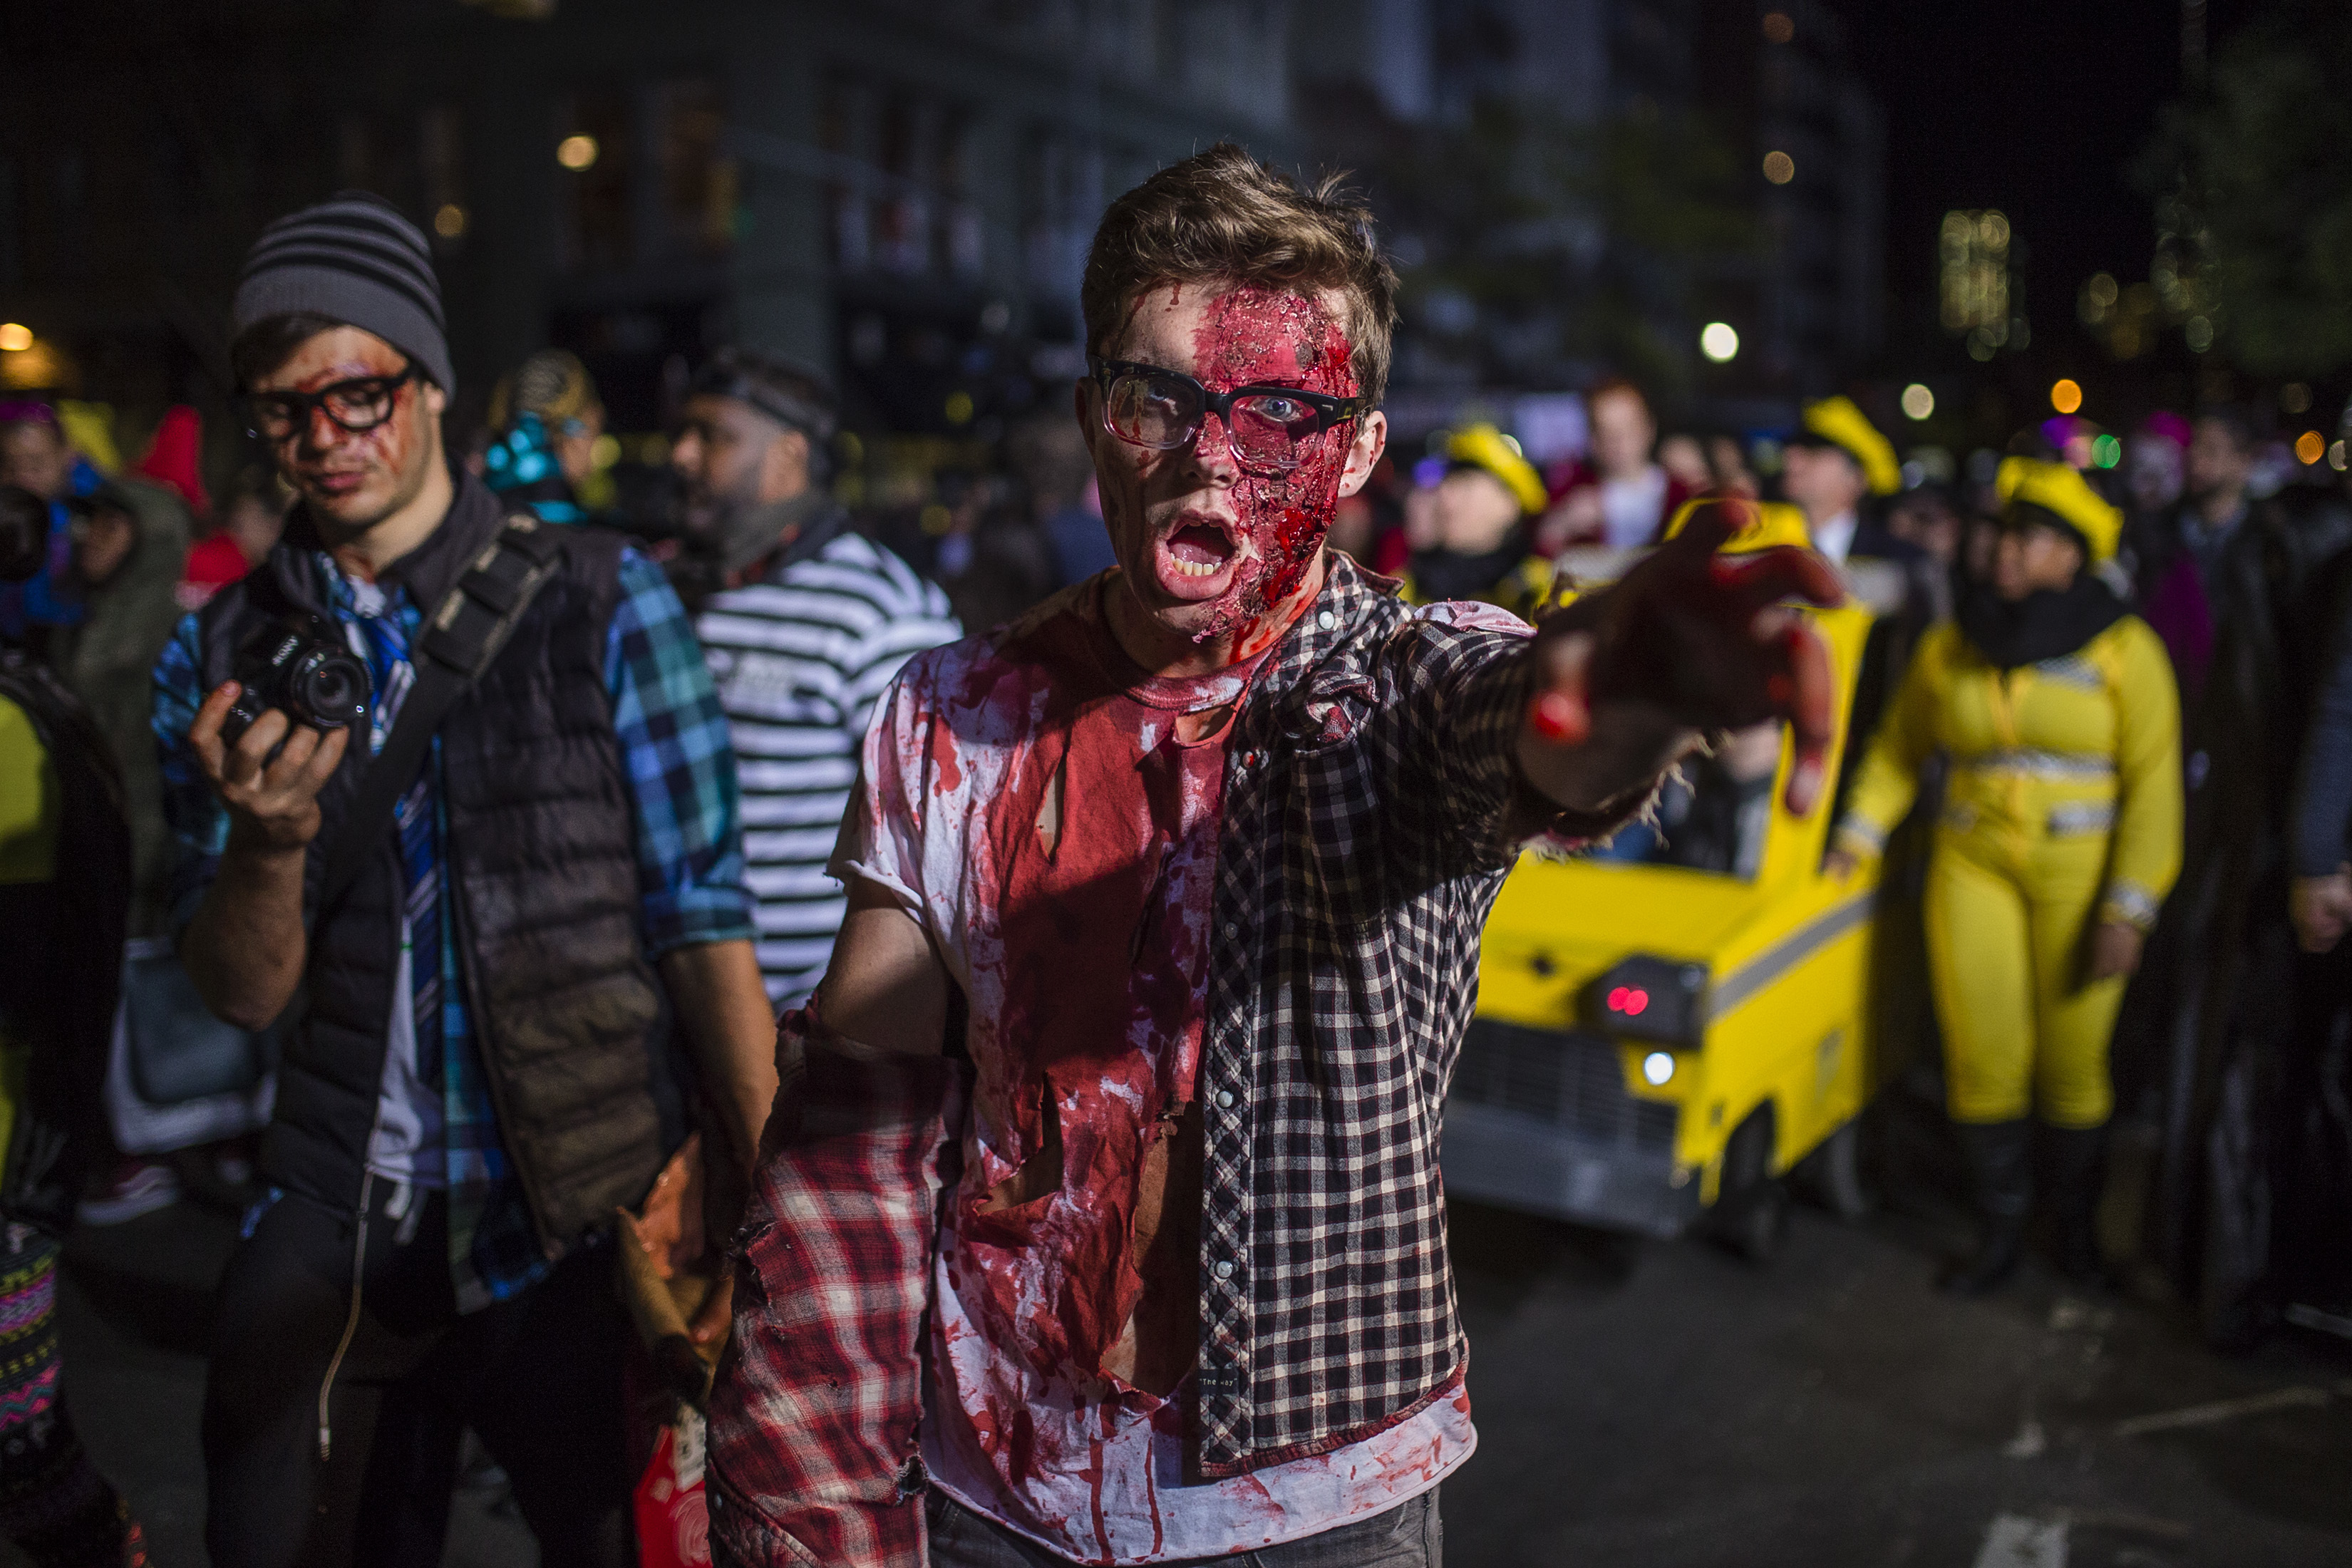 "<div class=""meta image-caption""><div class=""origin-logo origin-image none""><span>none</span></div><span class=""caption-text"">A reveler performs as he marches during the Greenwich Village Halloween Parade in New York, Monday, Oct. 31, 2016. (AP Photo/Andres Kudacki)</span></div>"